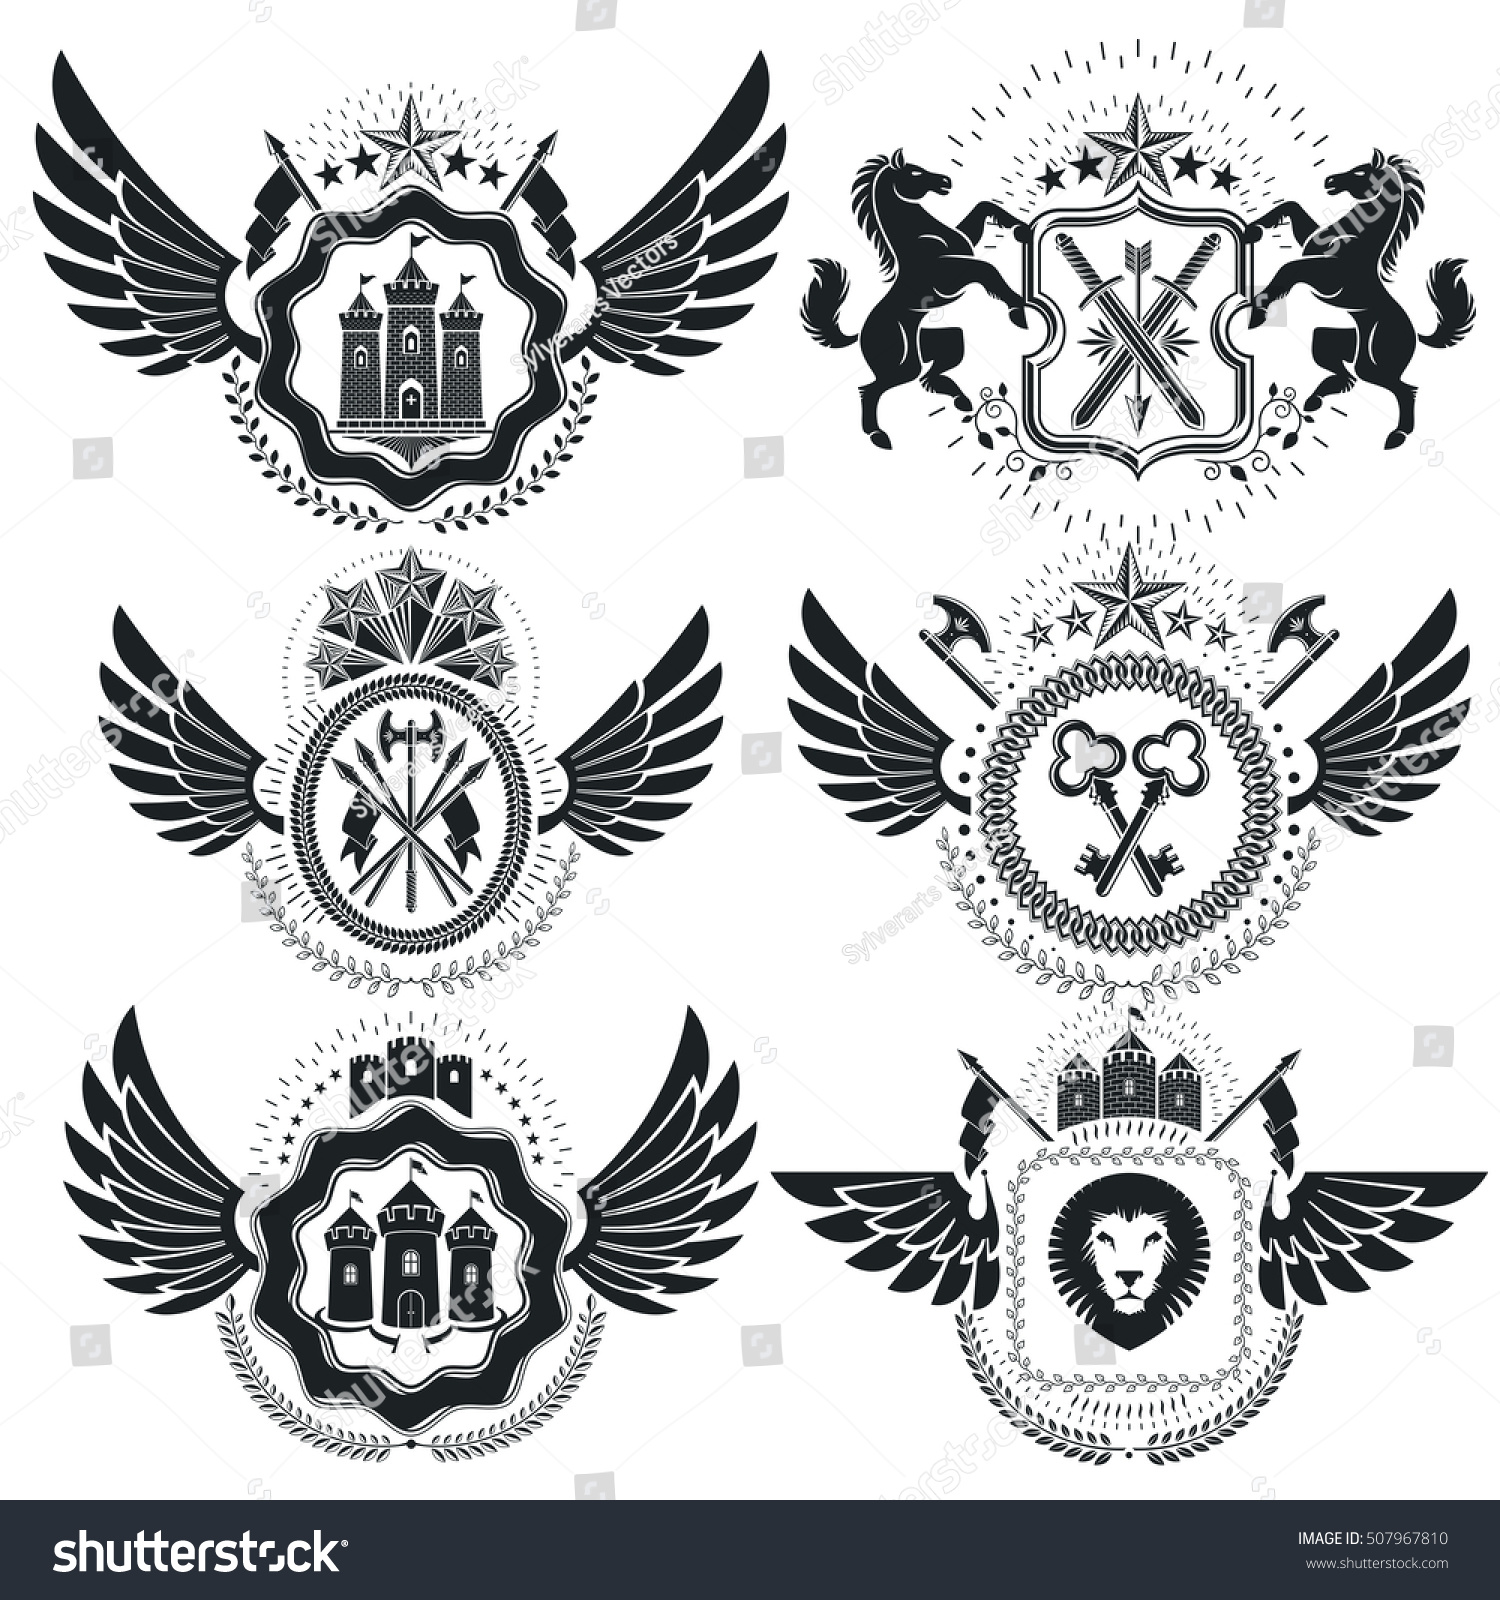 Heraldic coat arms decorative emblems collection stock vector heraldic coat of arms decorative emblems collection of symbols in vintage style biocorpaavc Images